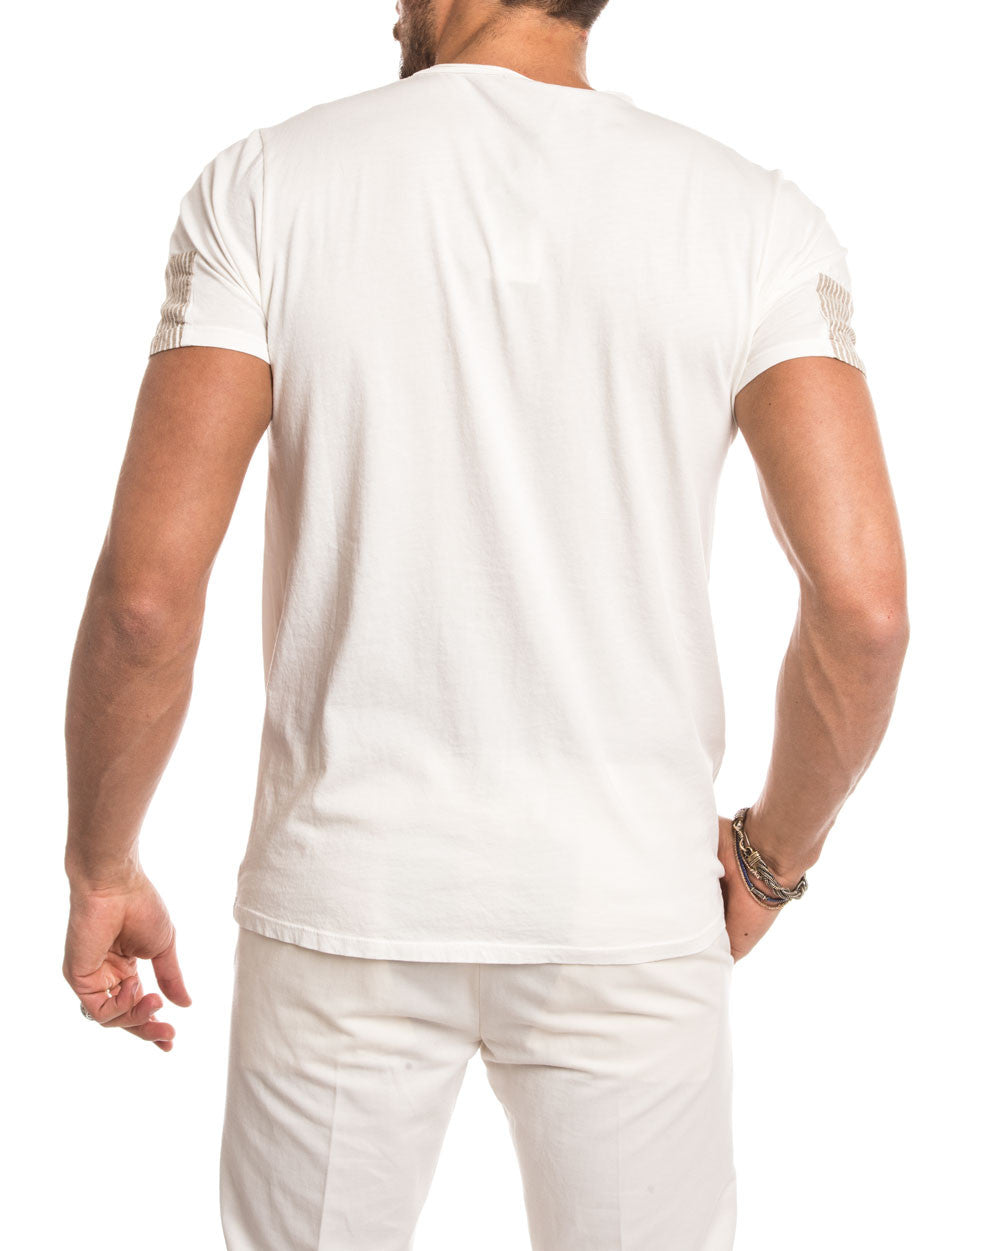 MEN'S CLOTHING | NATURAL CREW NECK T-SHIRT | WHITE | BEIGE | SHORT SLEEVES | TEE-SHIRT | SLIM FIT | NOHOW STREET COUTURE | NOHOW